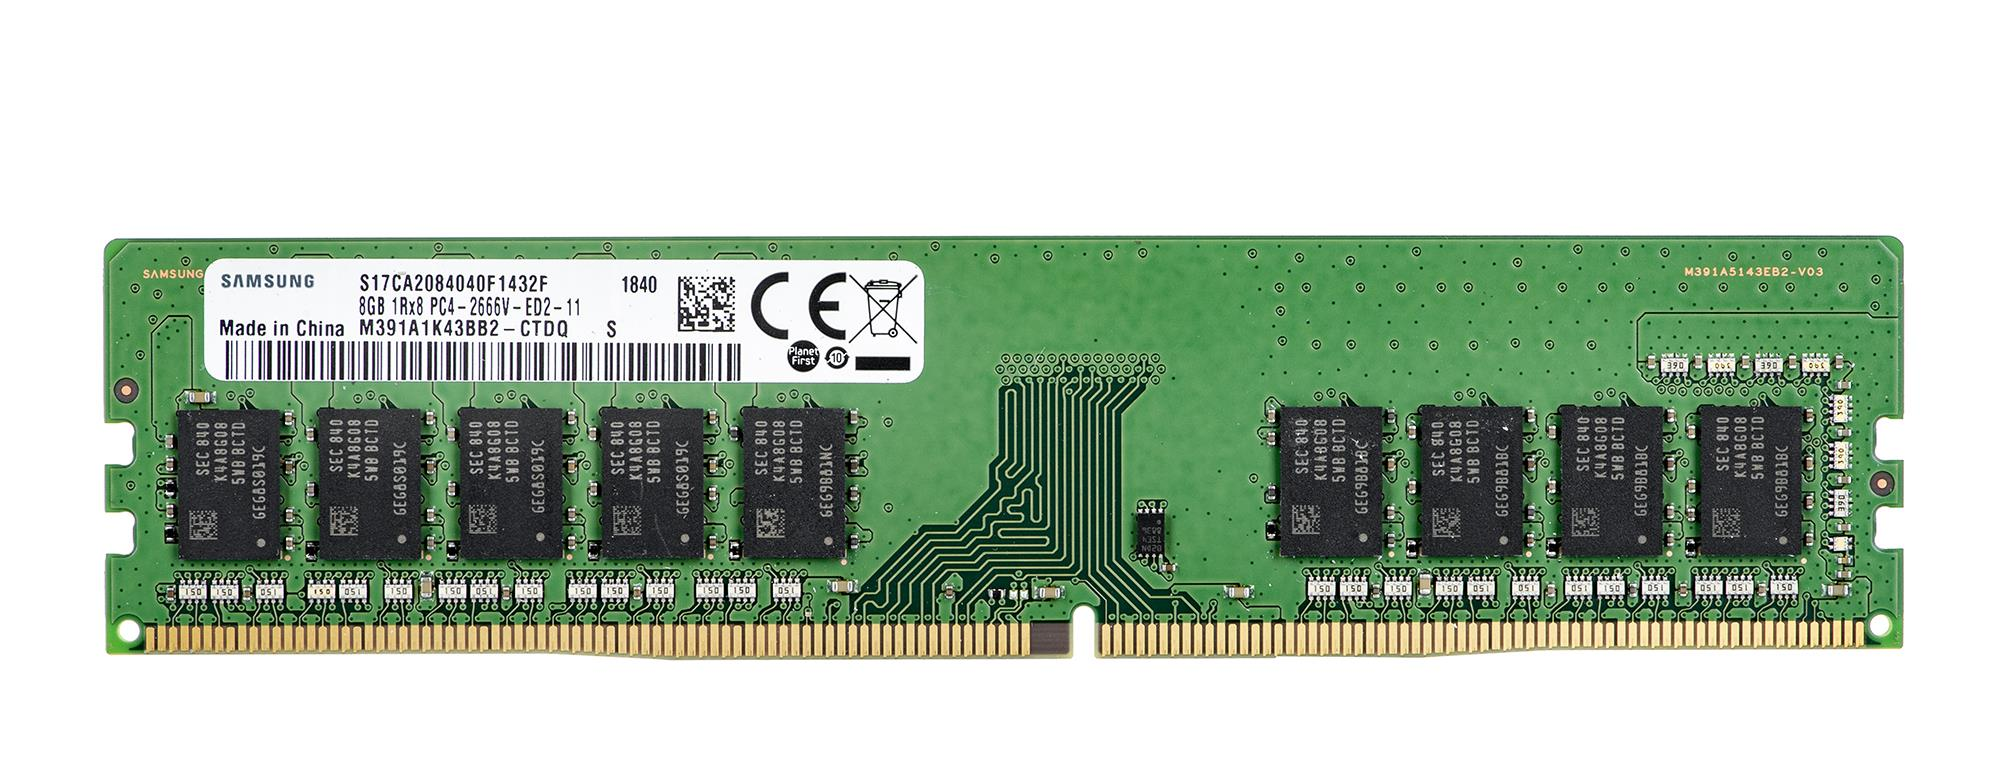 SAMSUNG 8GB DDR4-2666 UDIMM ECC Unbuffered CL17